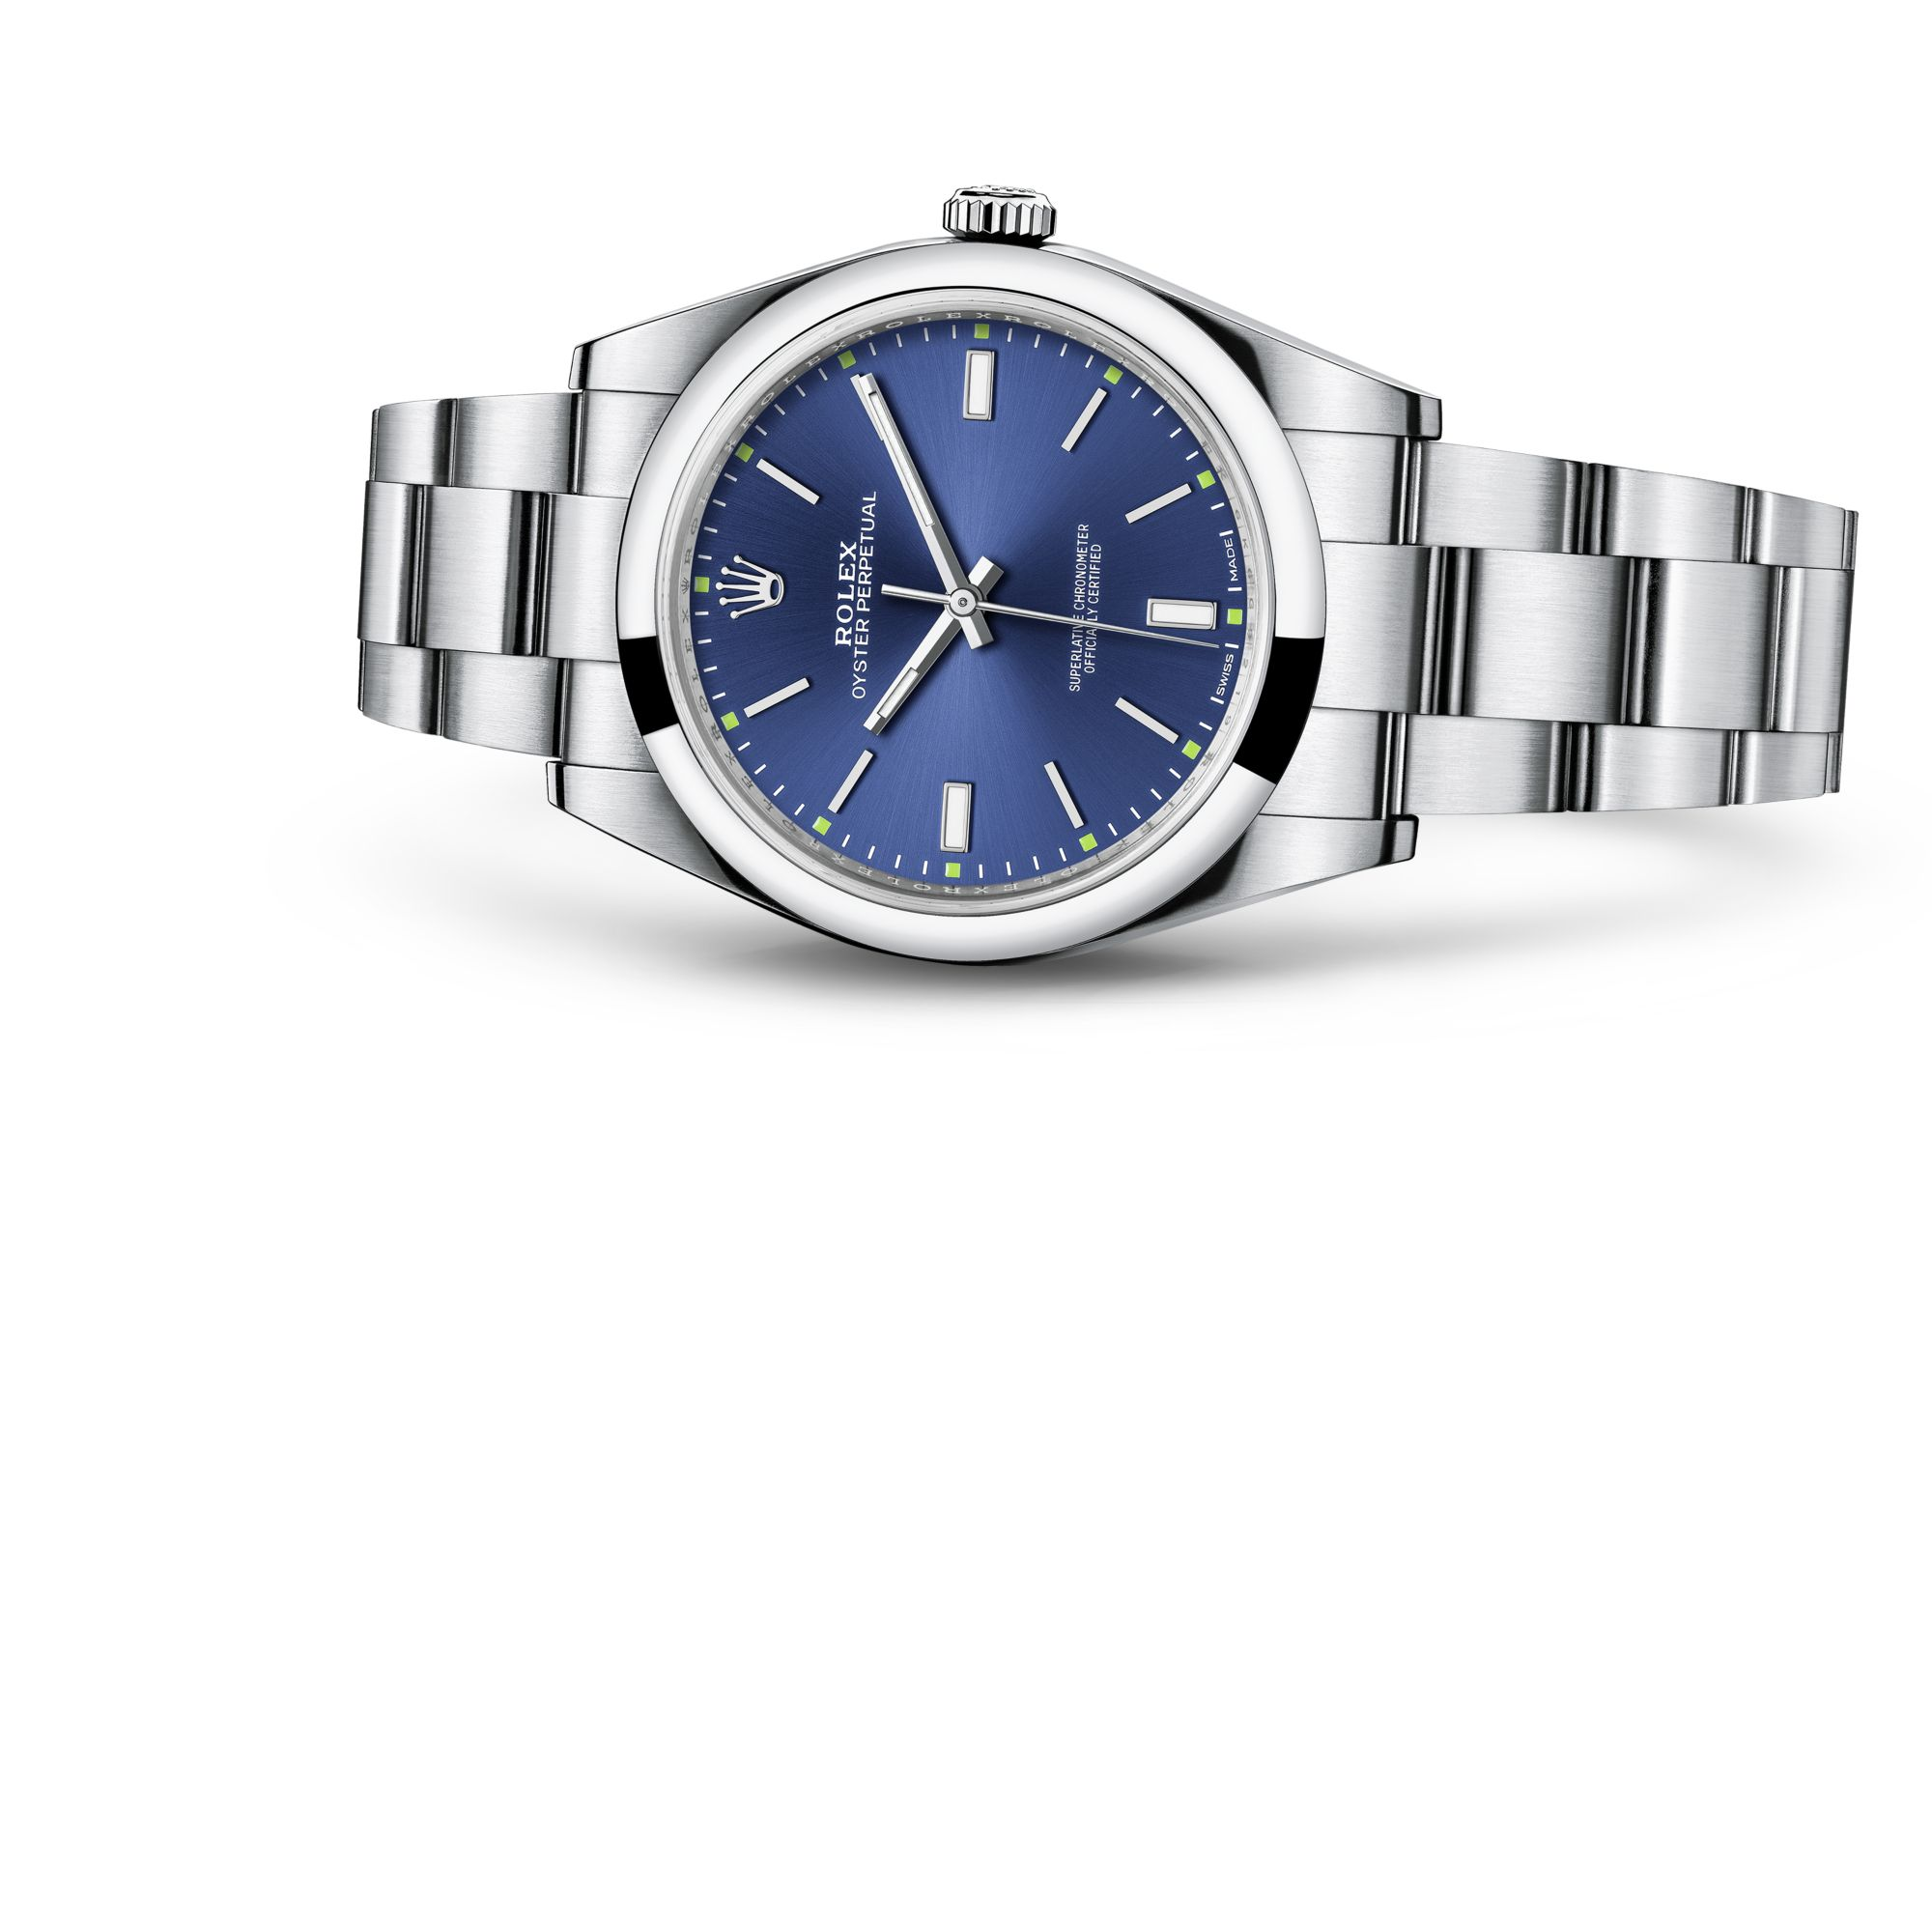 Rolex Oyster Perpetual 39 M114300-0003